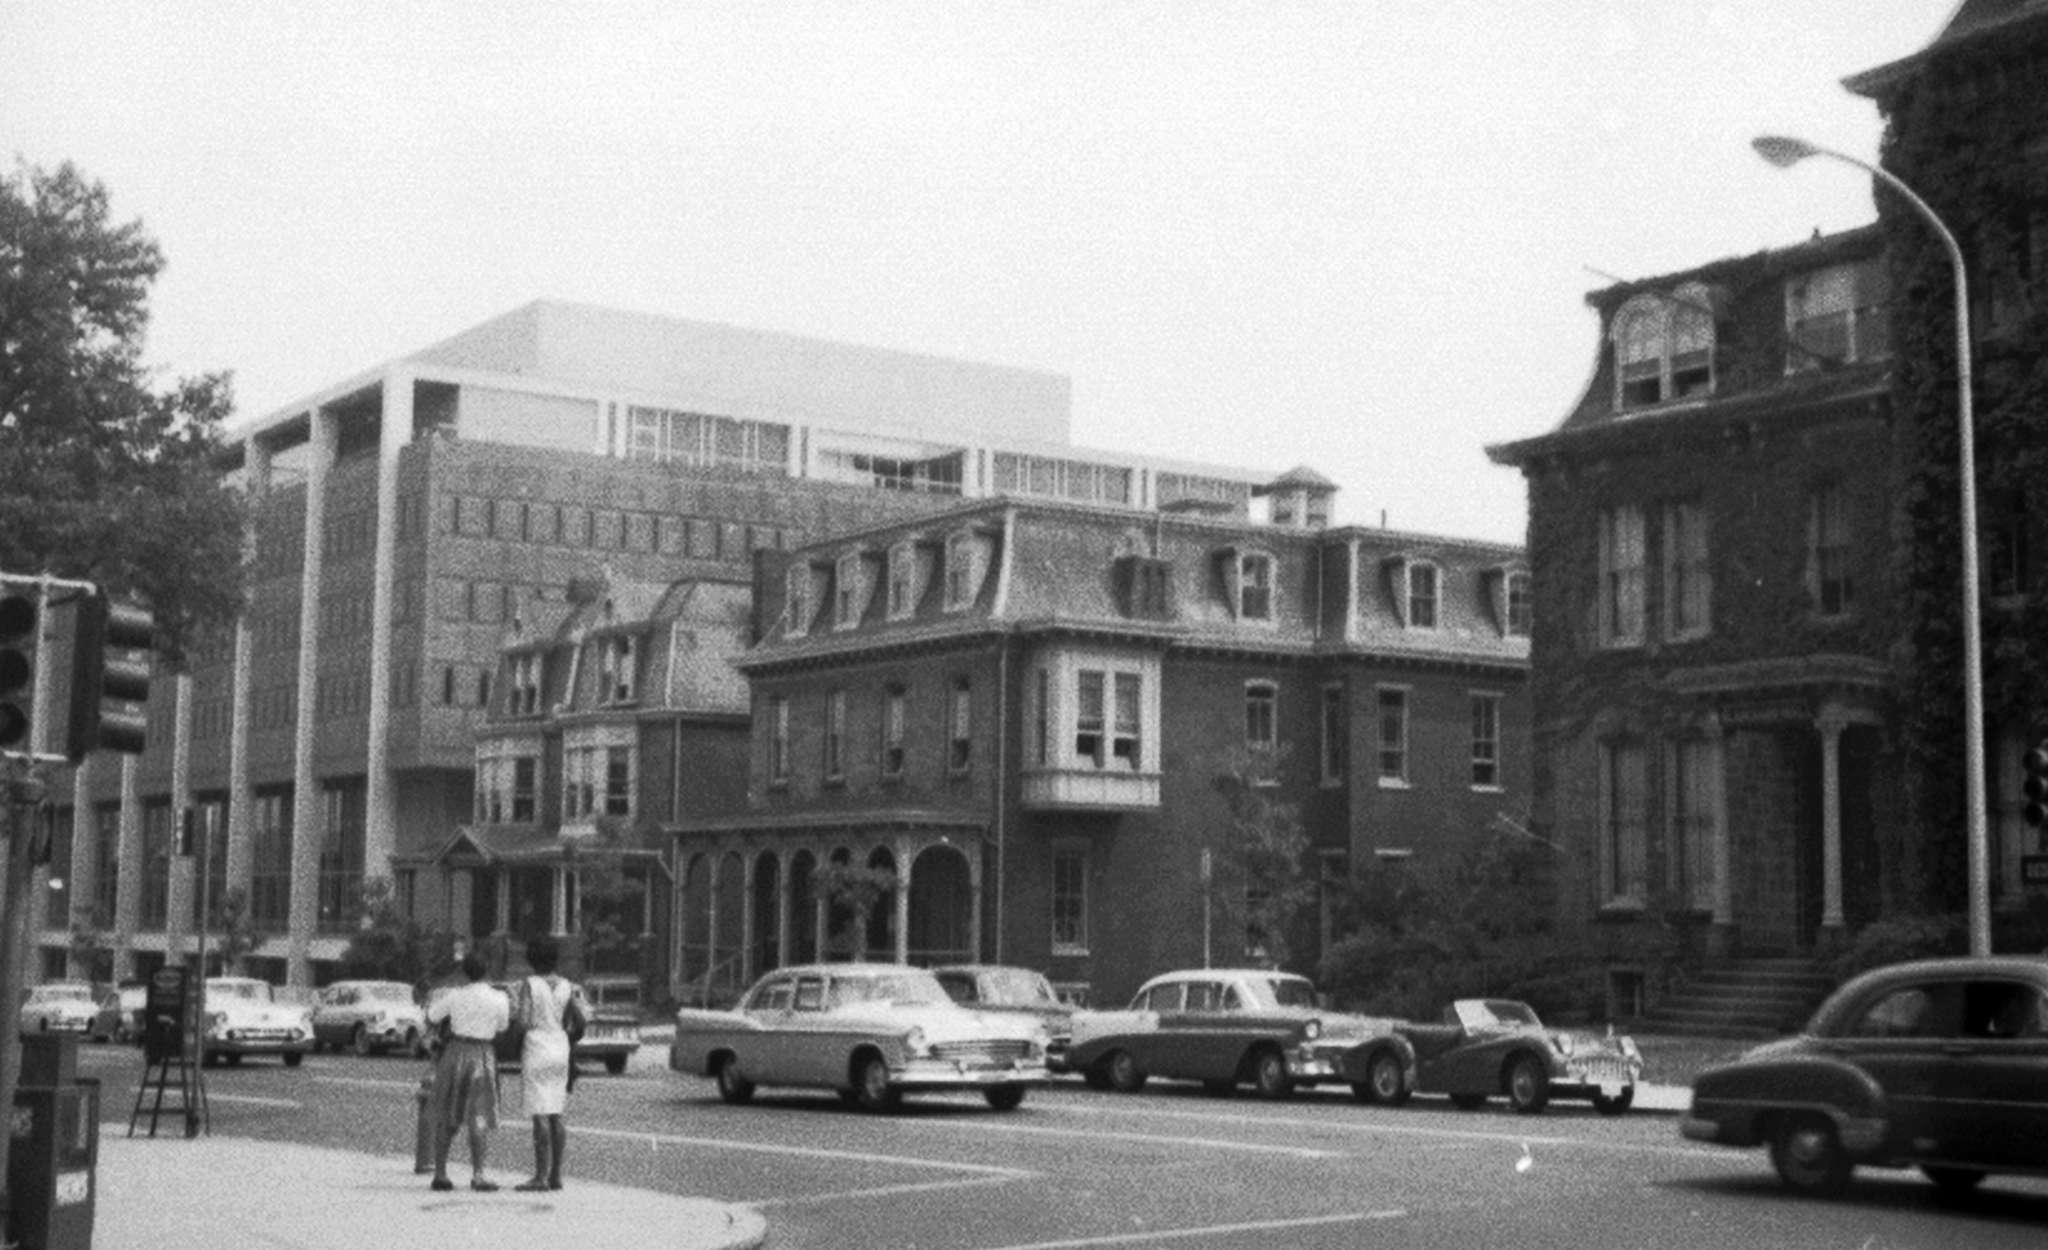 Victorian brownstones adjacent to Van Pelt Library (left), as seen from the intersection of 36th and Walnut streets, circa 1961 or 1962. At right, the Van Pelt Library and Dietrich Graduate Library in 2015. Penn effectively cordoned off its campus by erecting buildings that faced inward, such as putting the Van Pelt loading dock facing Walnut Street.